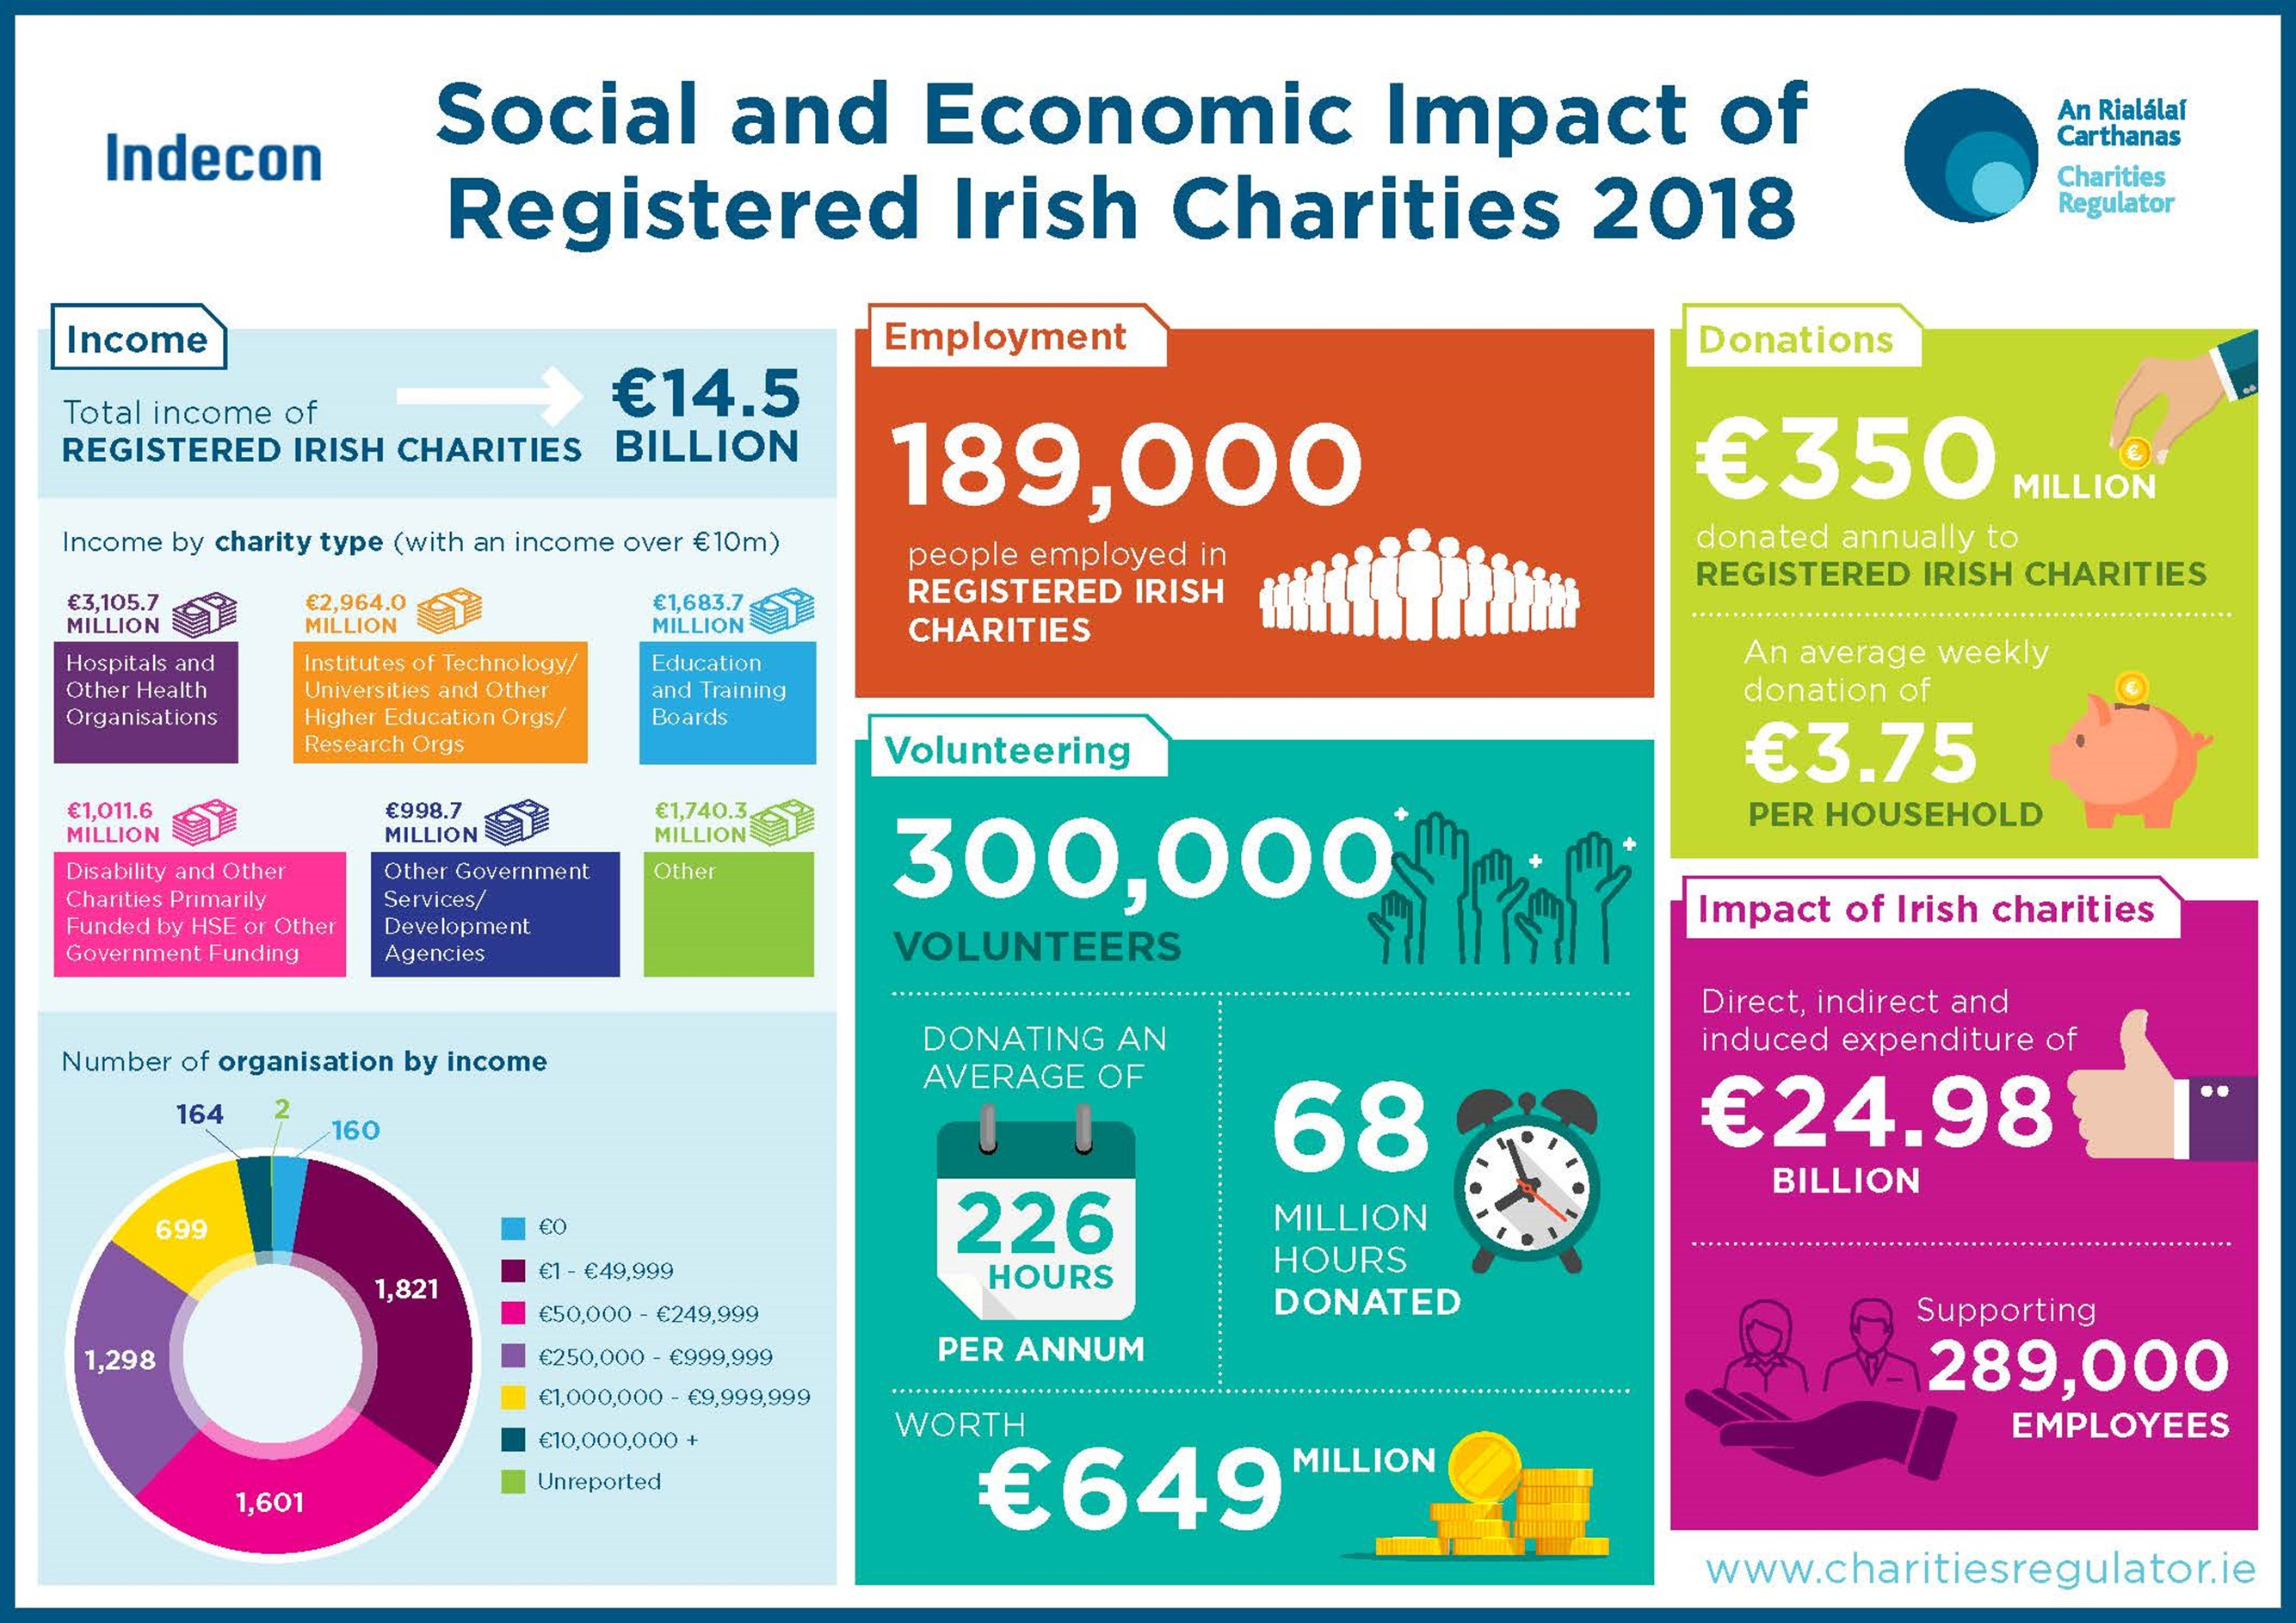 Social and Economic Impact of Irish Registered Irish Charities 2018